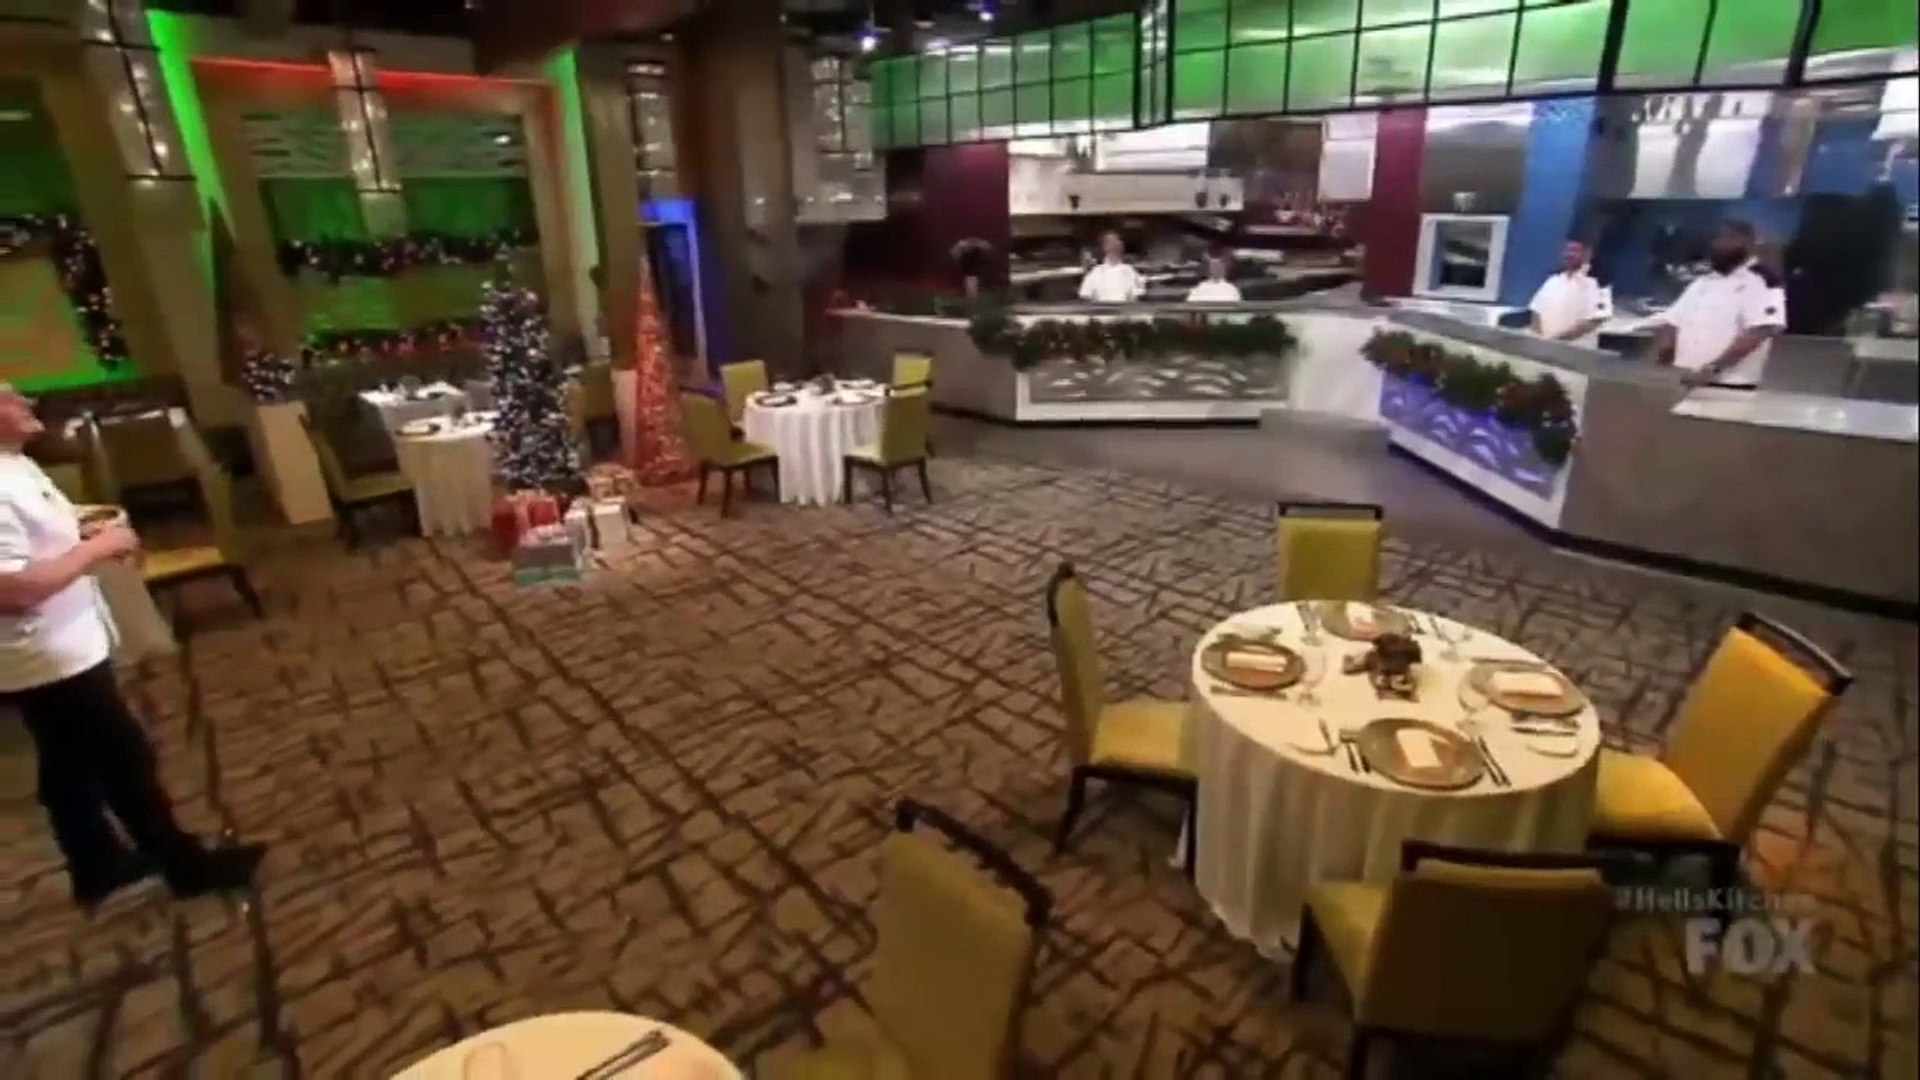 Terrific Hells Kitchen S17E14 Families Come To Hell Home Interior And Landscaping Analalmasignezvosmurscom